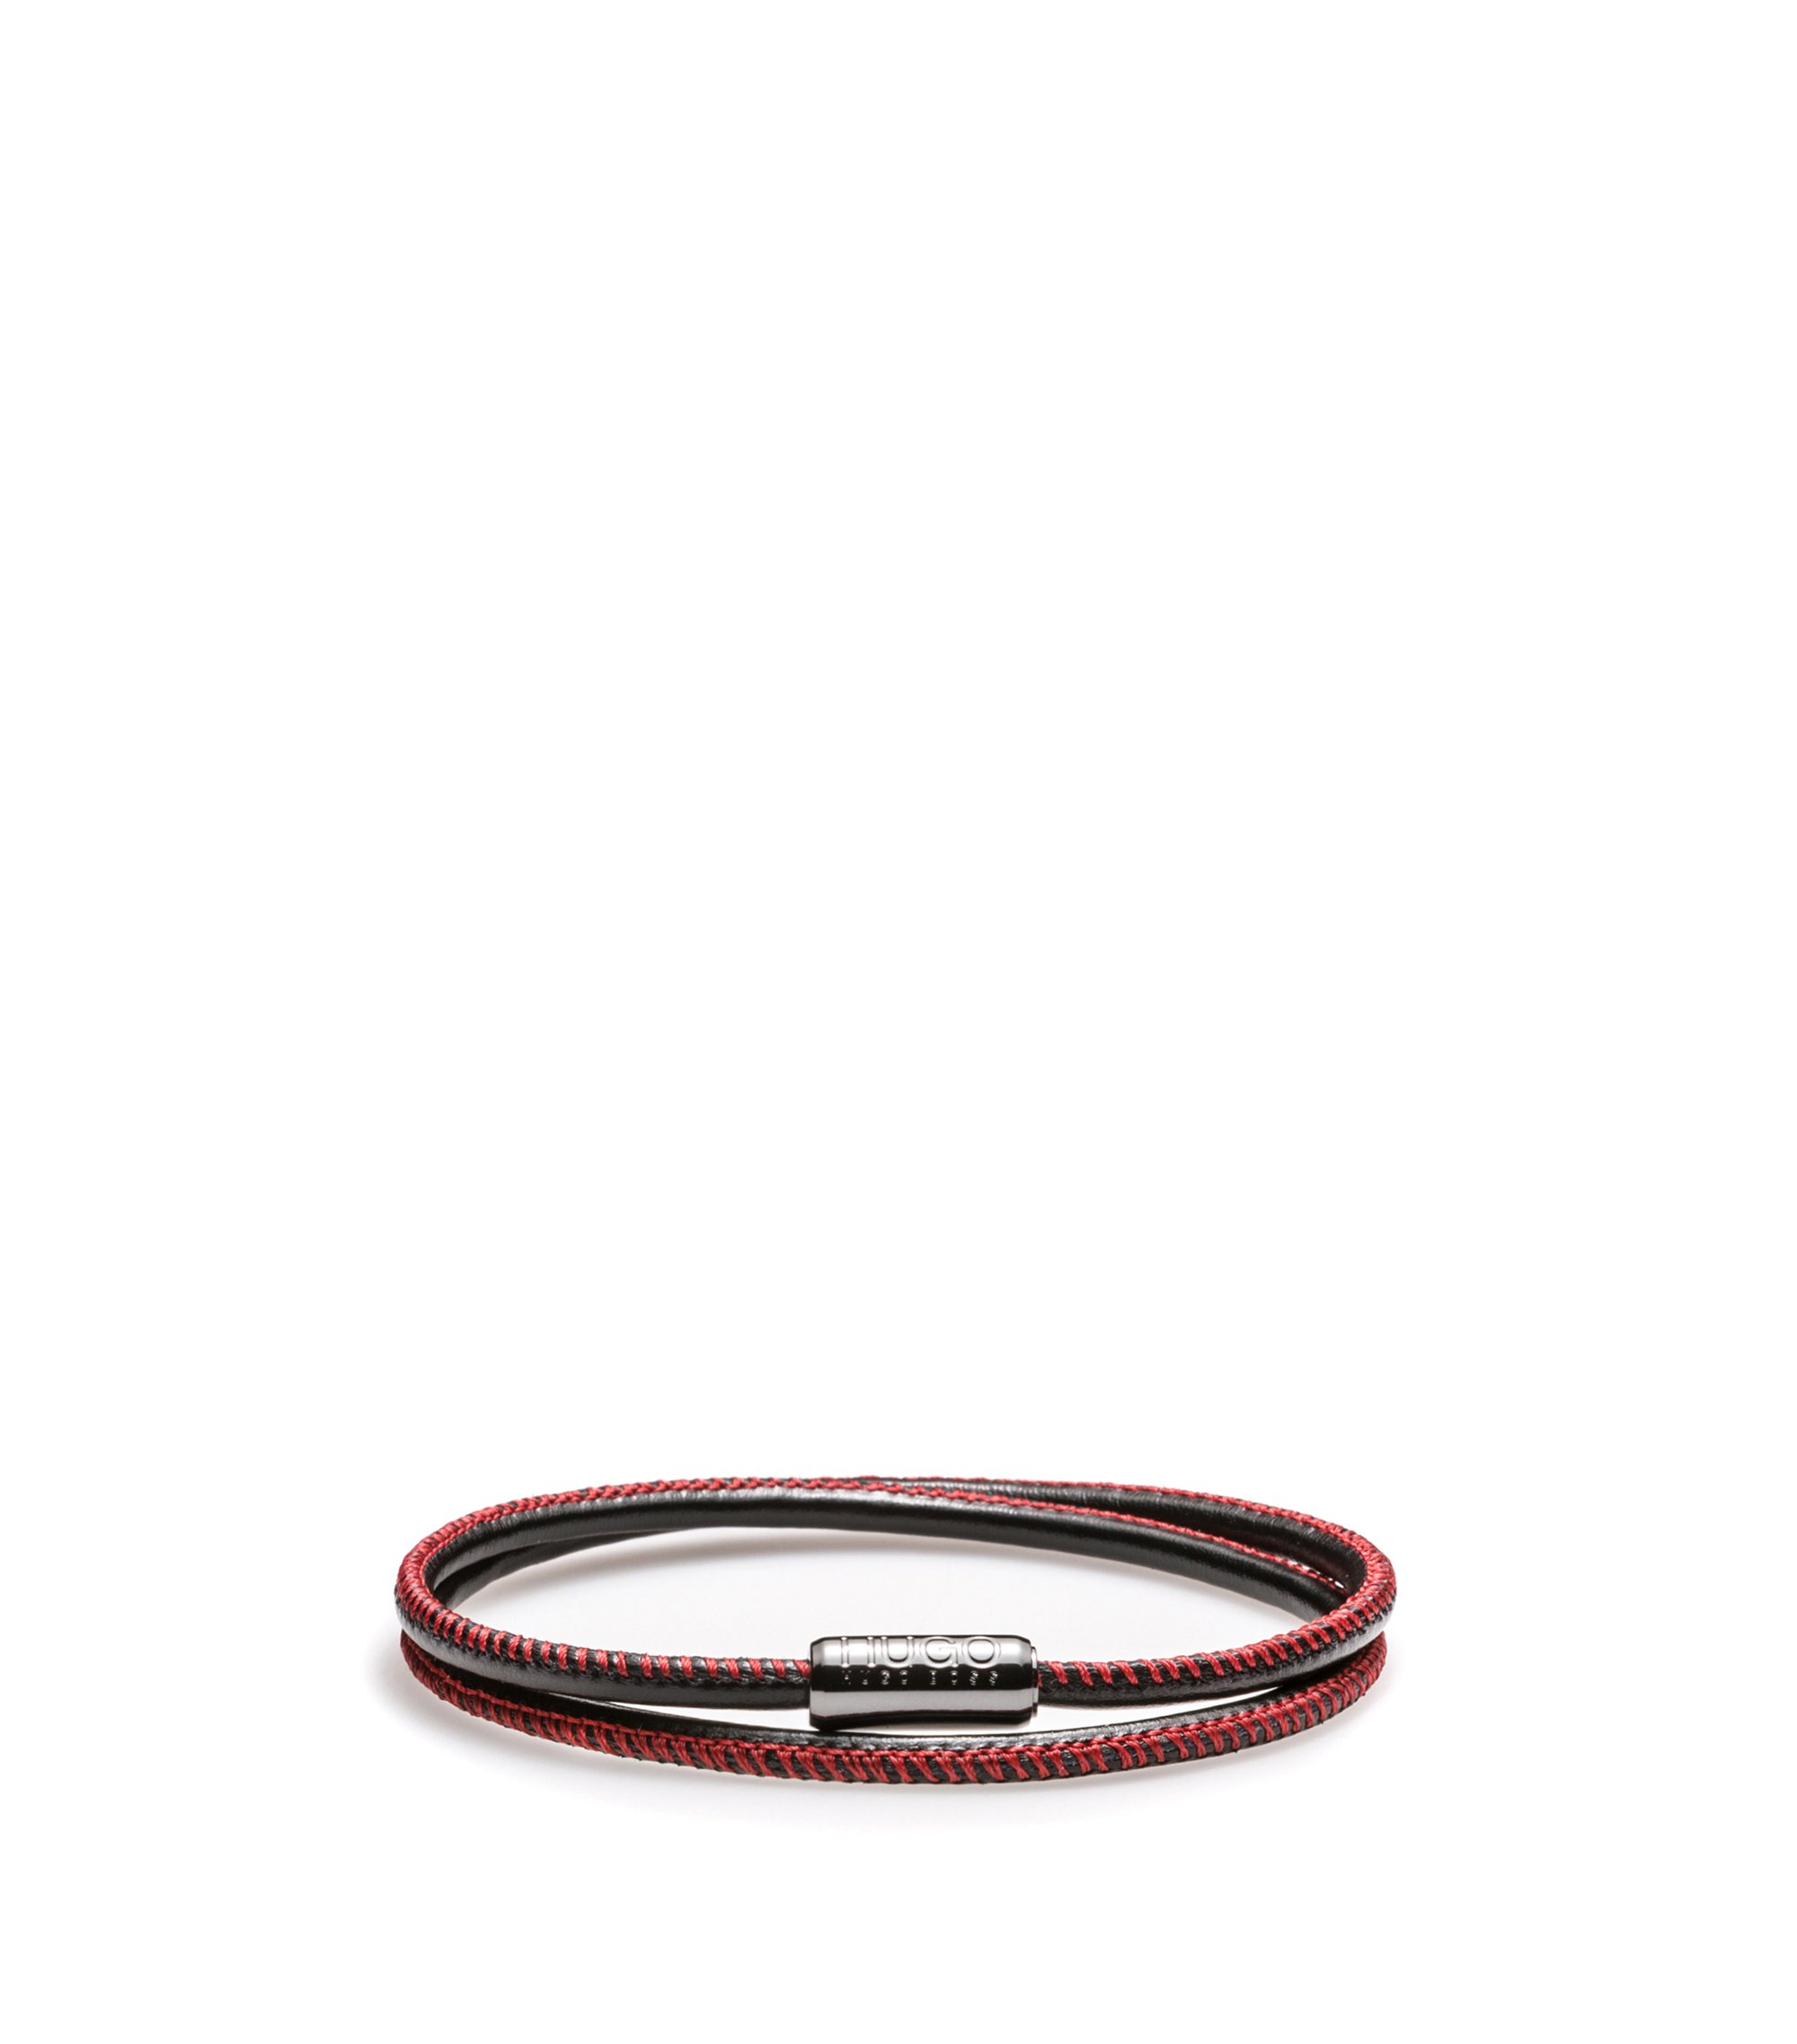 Italian calf-leather bracelet with magnetic closure, Patterned